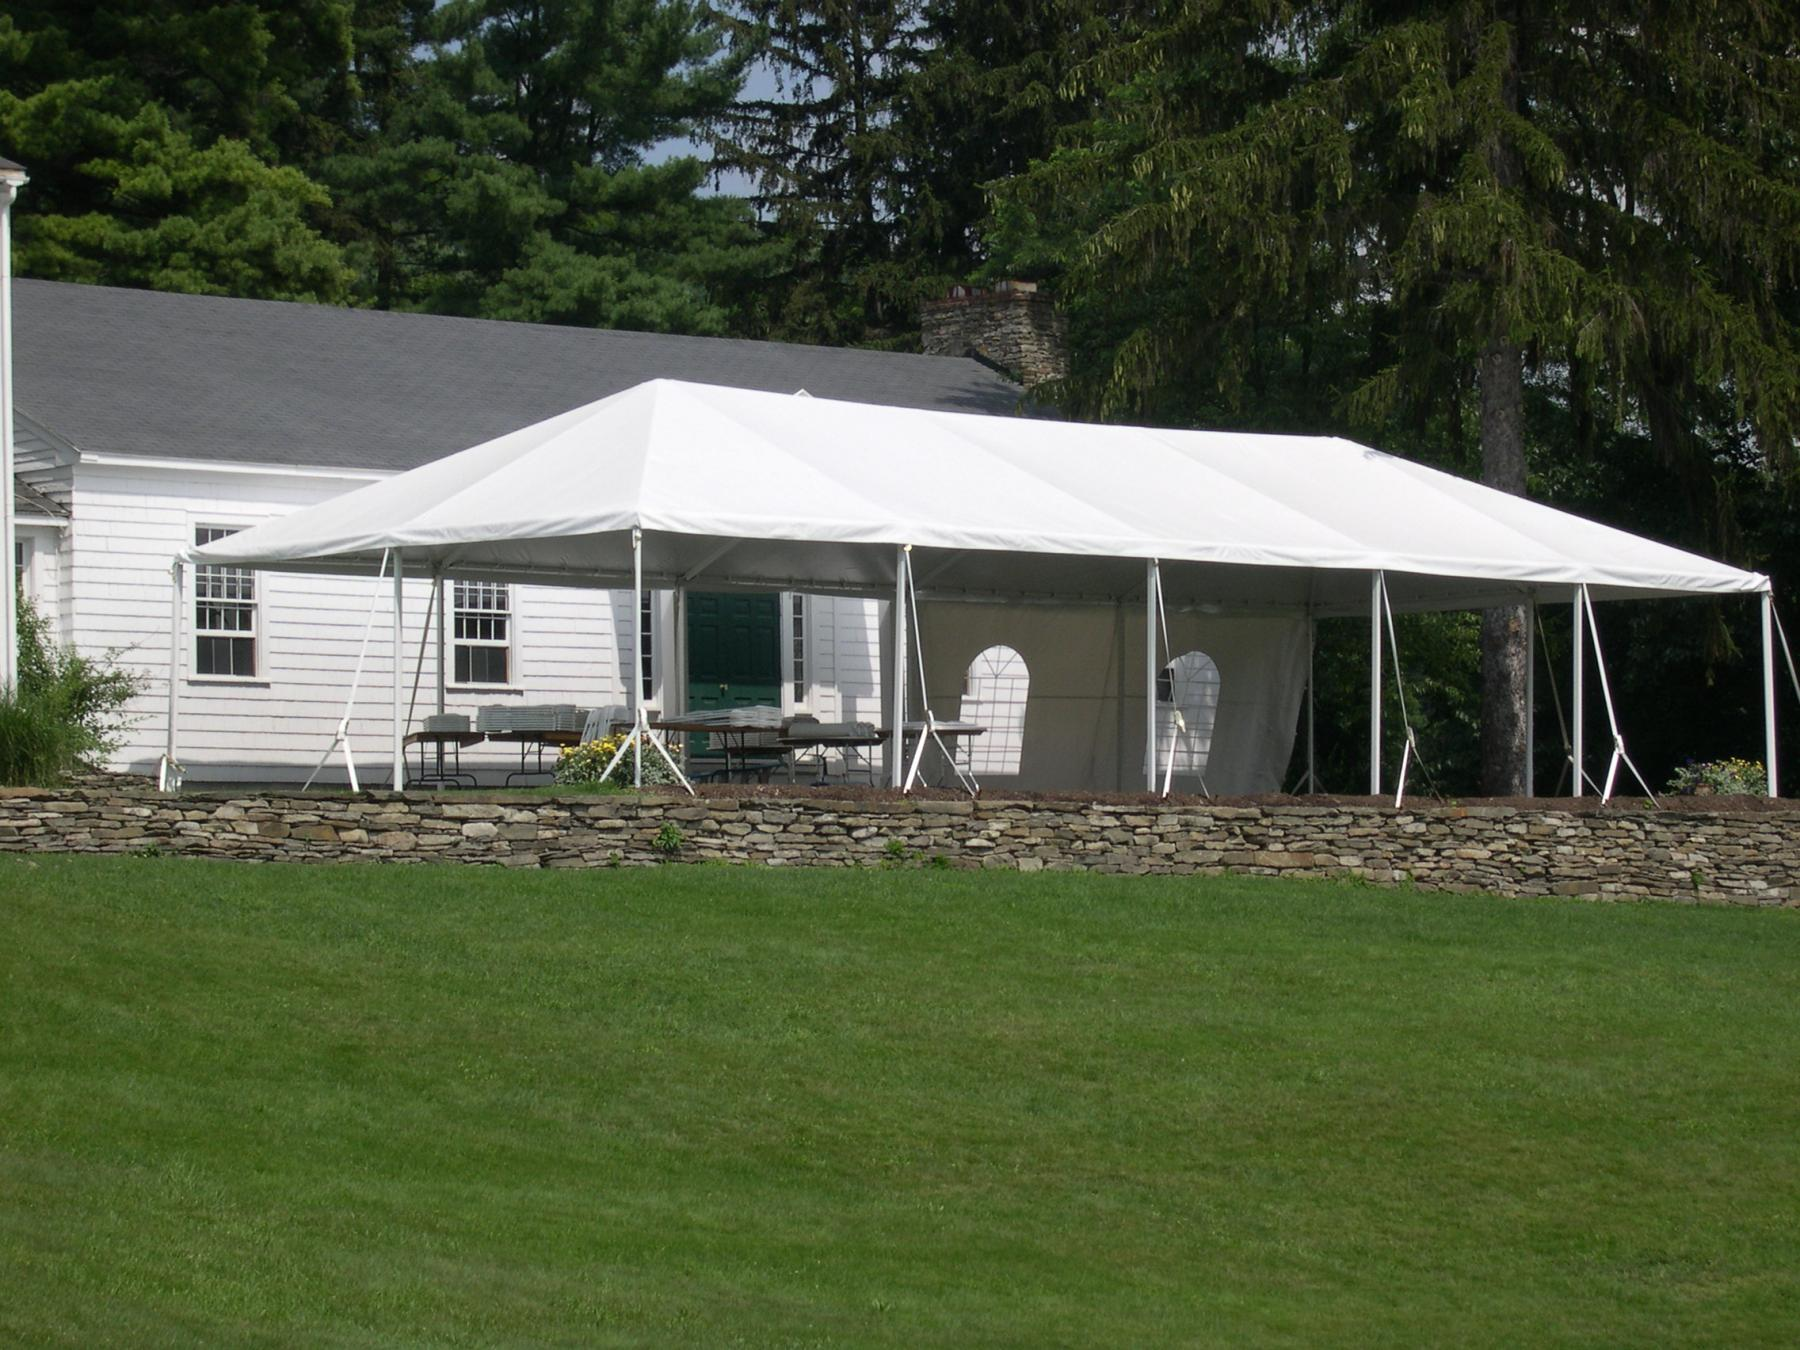 Expert Frame Tent Manufacturer   Browse Our Frame Tents For Sale Now